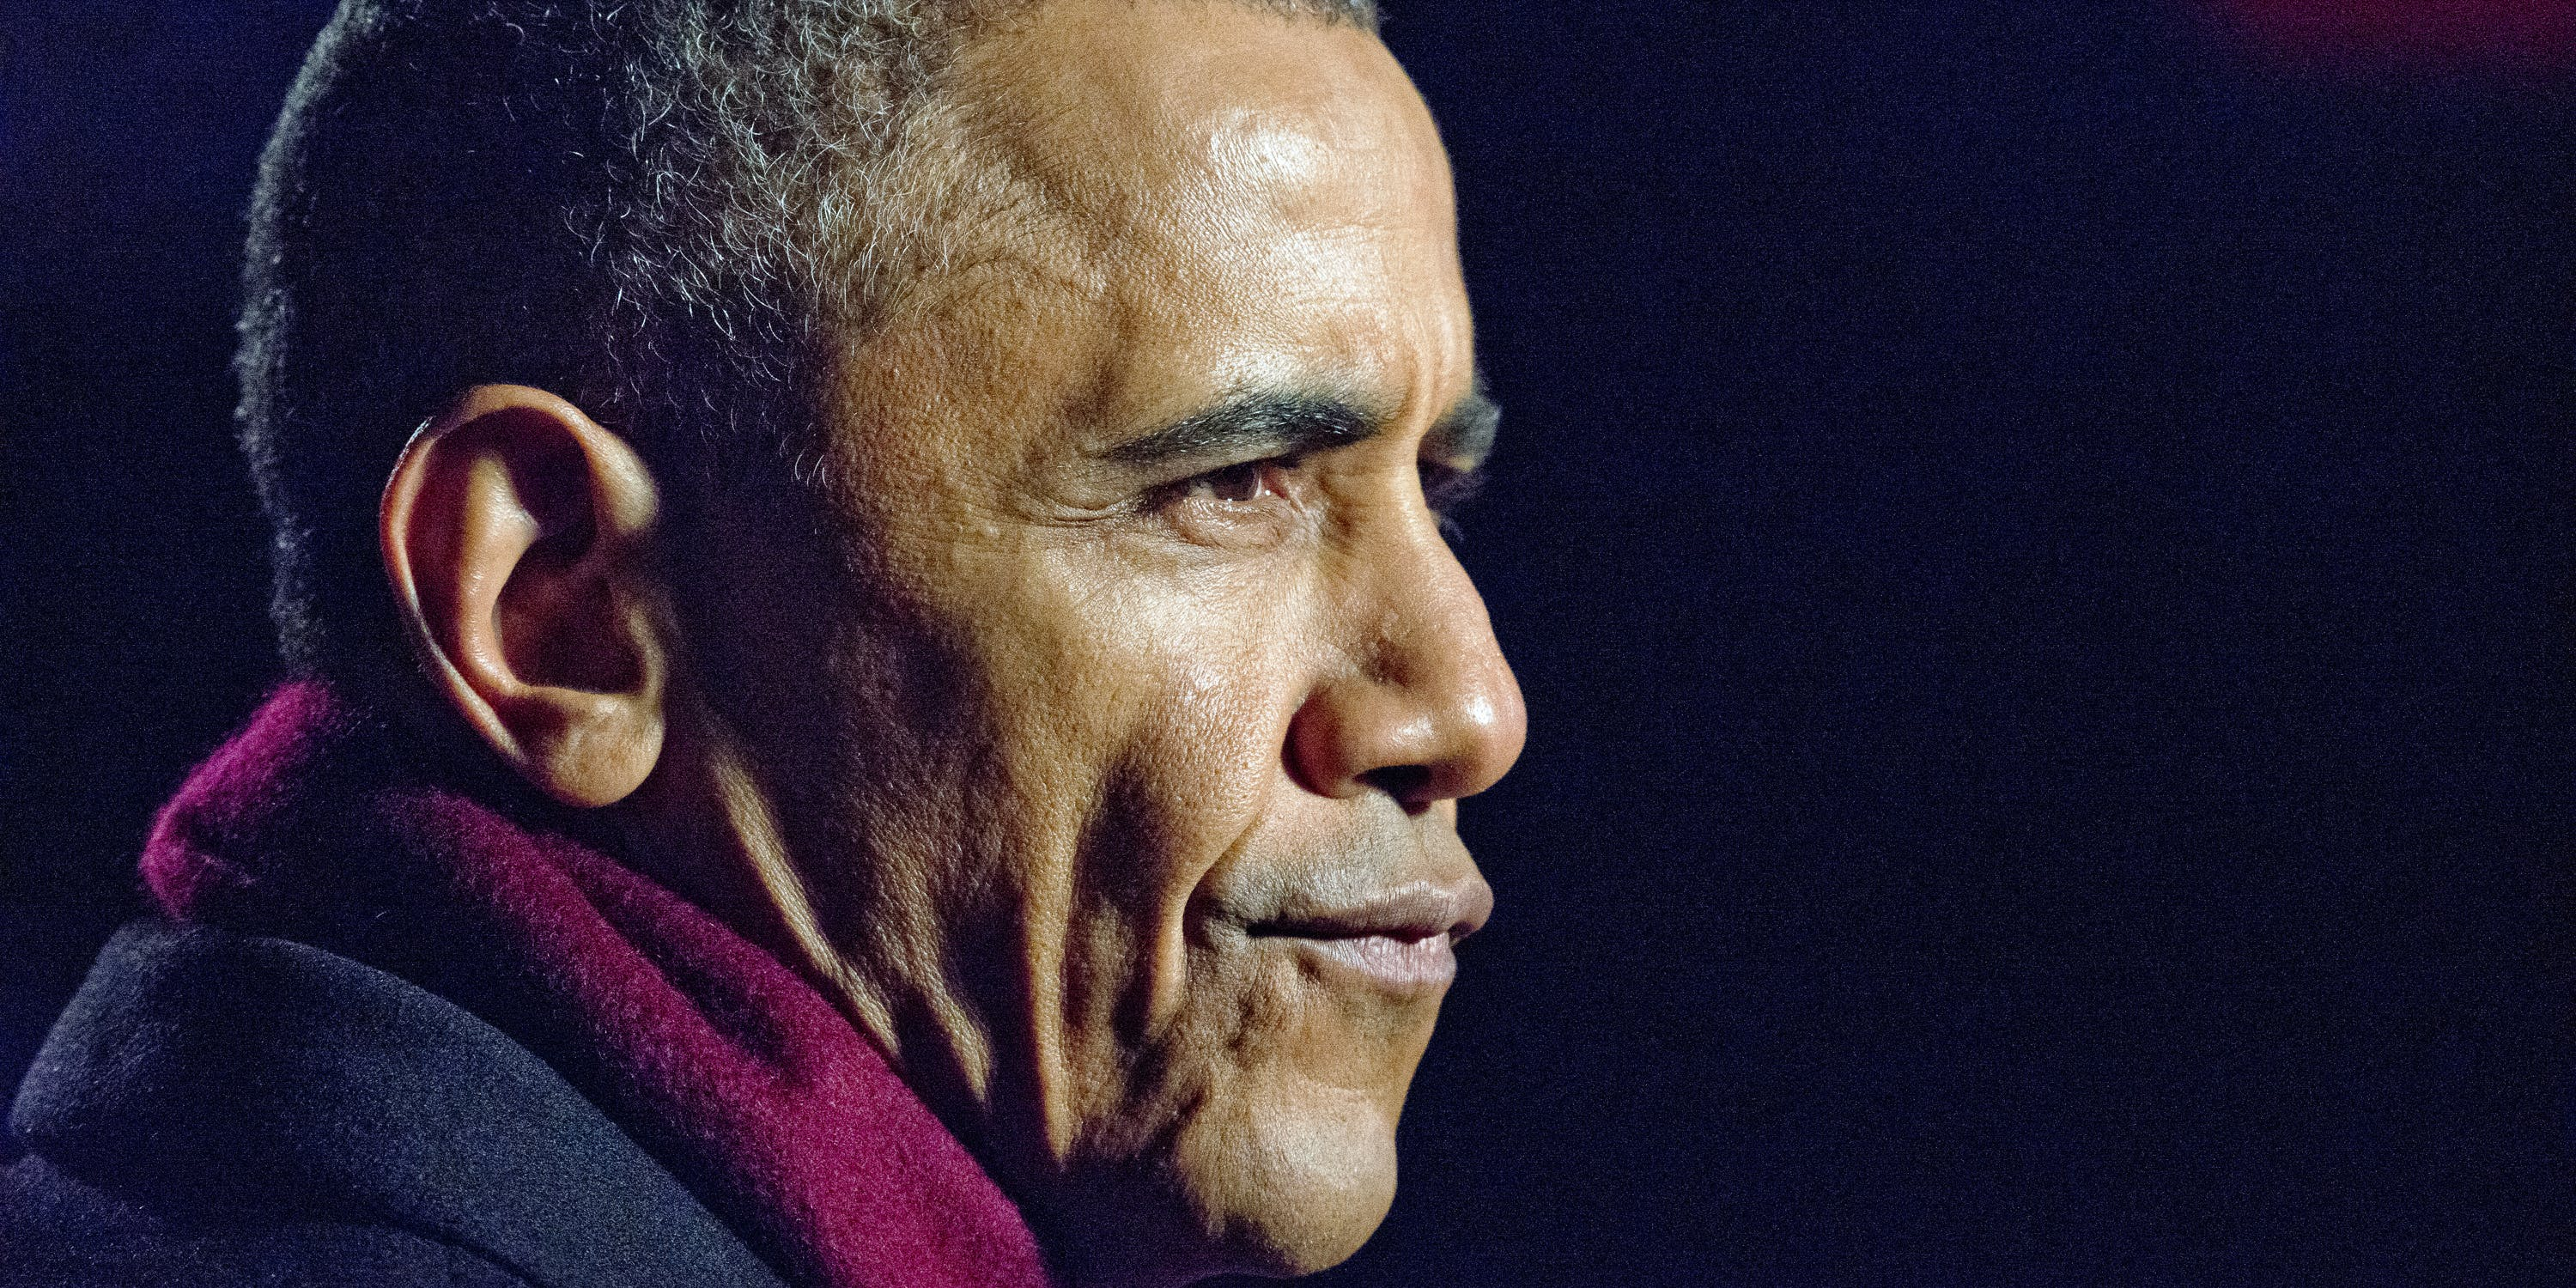 U.S. President Barack Obama grimaces during one of the many production delays as he and the first family attend the National Christmas Tree Lighting on the Ellipse December 1, 2016 in Washington, DC. This year is the 94th annual National Christmas Tree Lighting Ceremony.